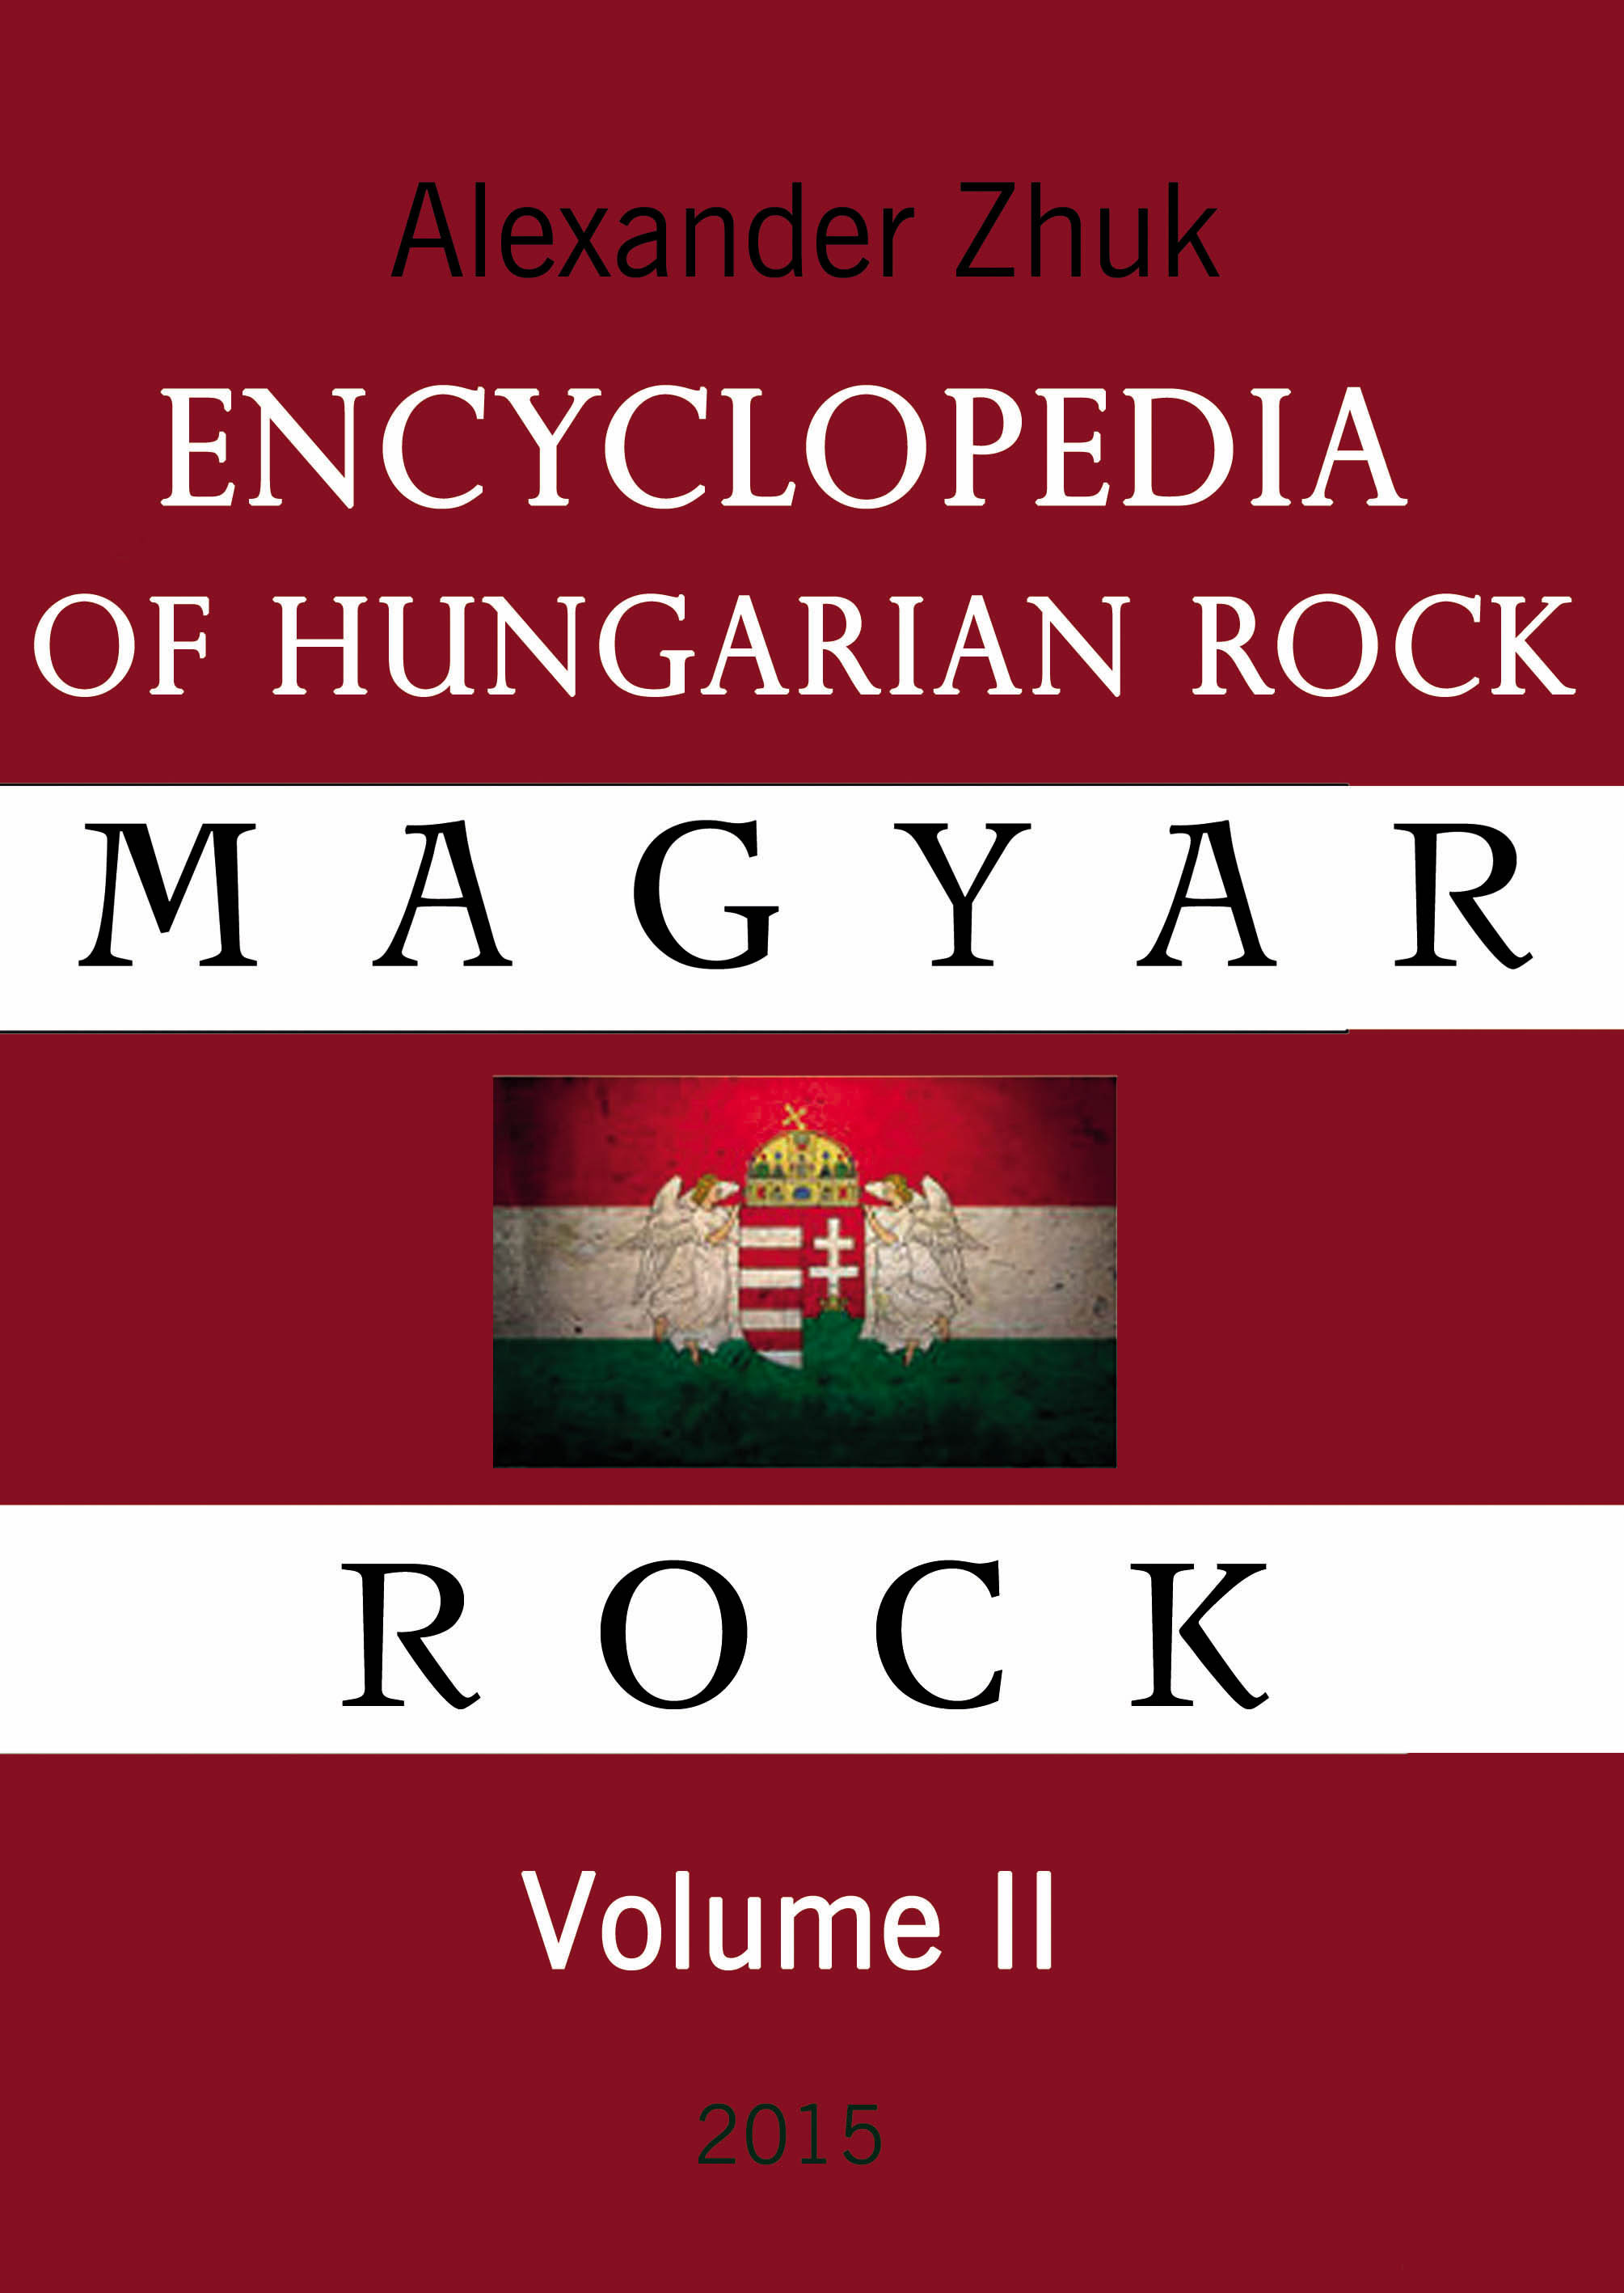 Alexandr Zhuk Encyclopedia of Hungarian rock. Volume two 500ml usb air humidifier essential oil diffuser mist maker fogger mute aroma atomizer air purifier night light for home